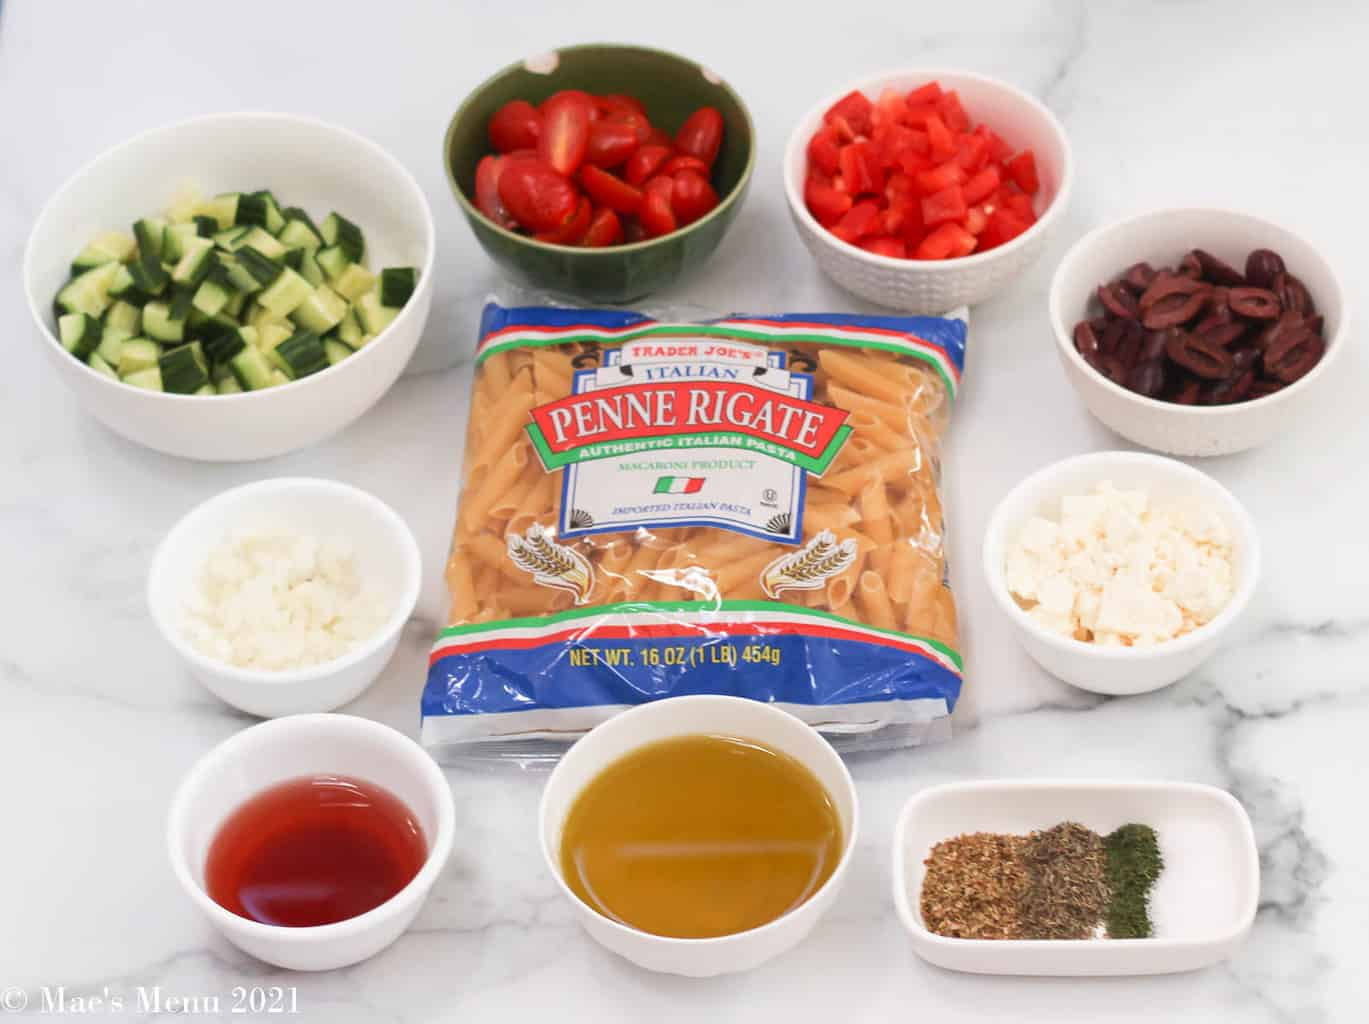 All the ingredients for Greek penne pasta salad on a granite counter